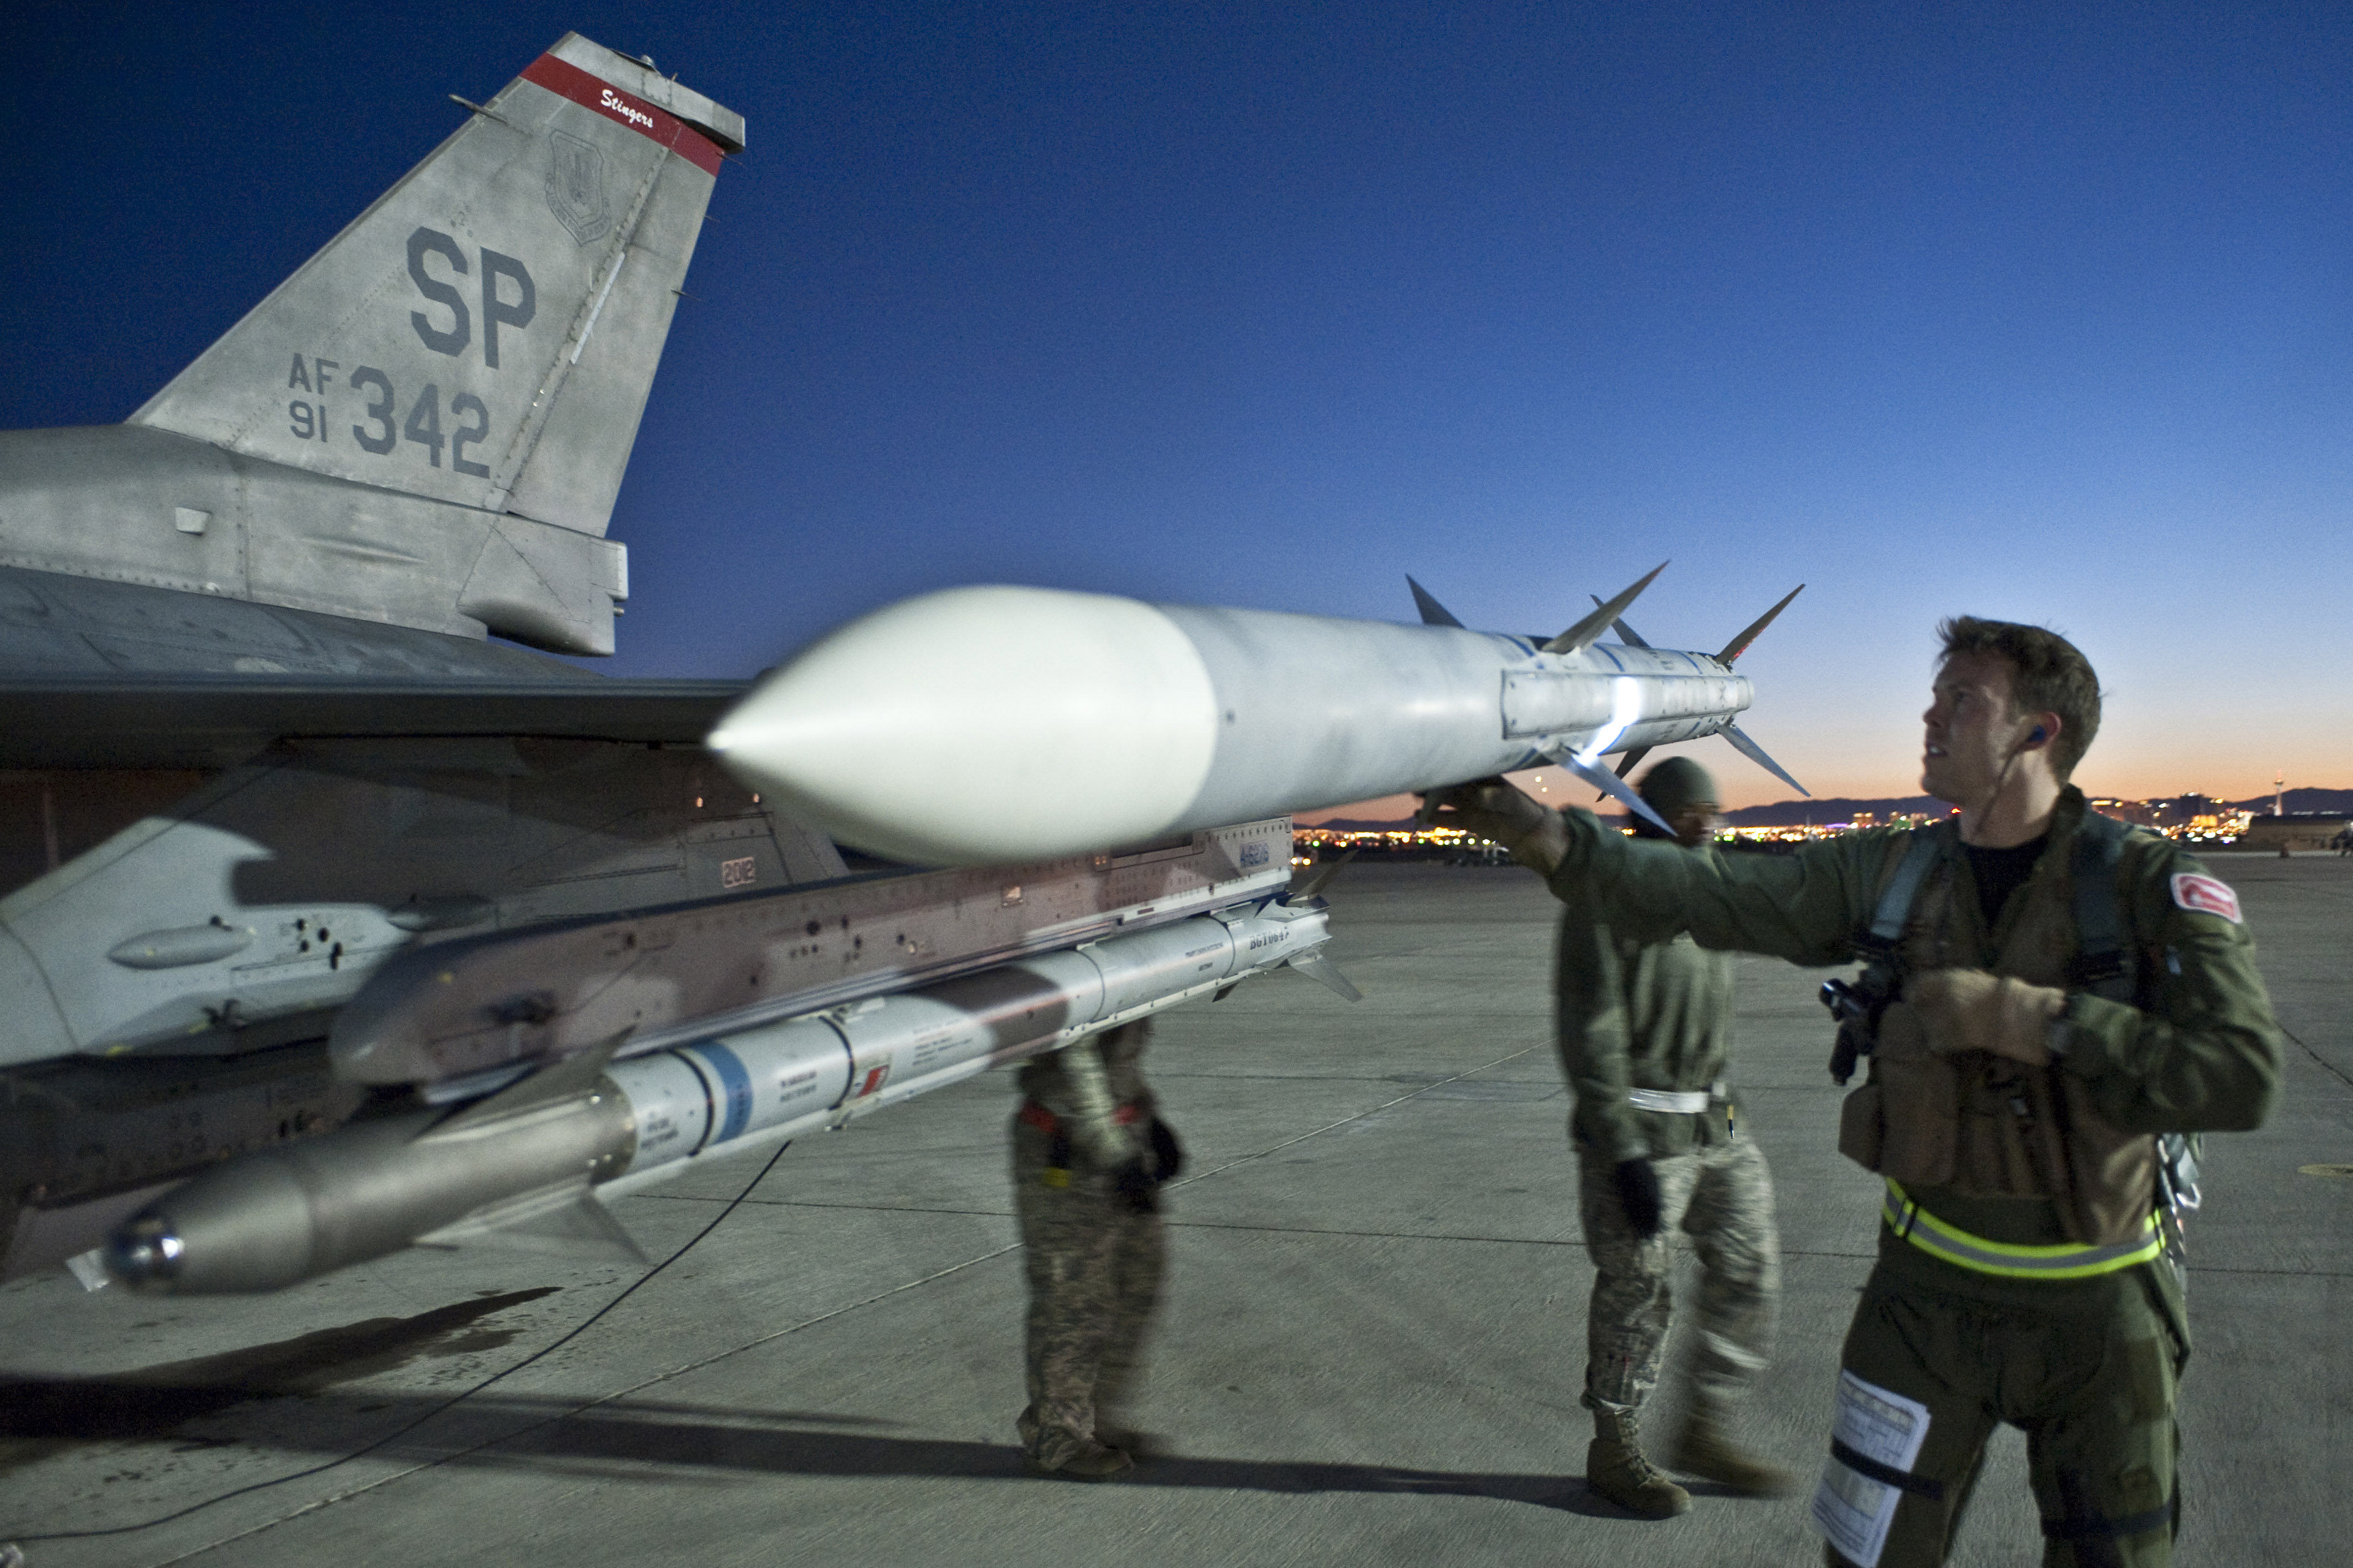 air force f 16 falcon with File Defense Gov News Photo 110202 F 3431h 377   U S  Air Force Capt  Brian Morrissey Right A Pilot Assigned To The 480th Fighter Squadron Spangdahlem Air Base Germany Conducts Preflight on F16b fb01 10years f16 1989 in addition File F 16Cs 148th FW at Hickam AFB 2010 furthermore Lockheed Martin F 16 Falcon 995 israel Israeli Air Force 171422 large besides 0 7340 L 4625569 00 additionally Lockheed martin f 16c norwegian tiger 2.